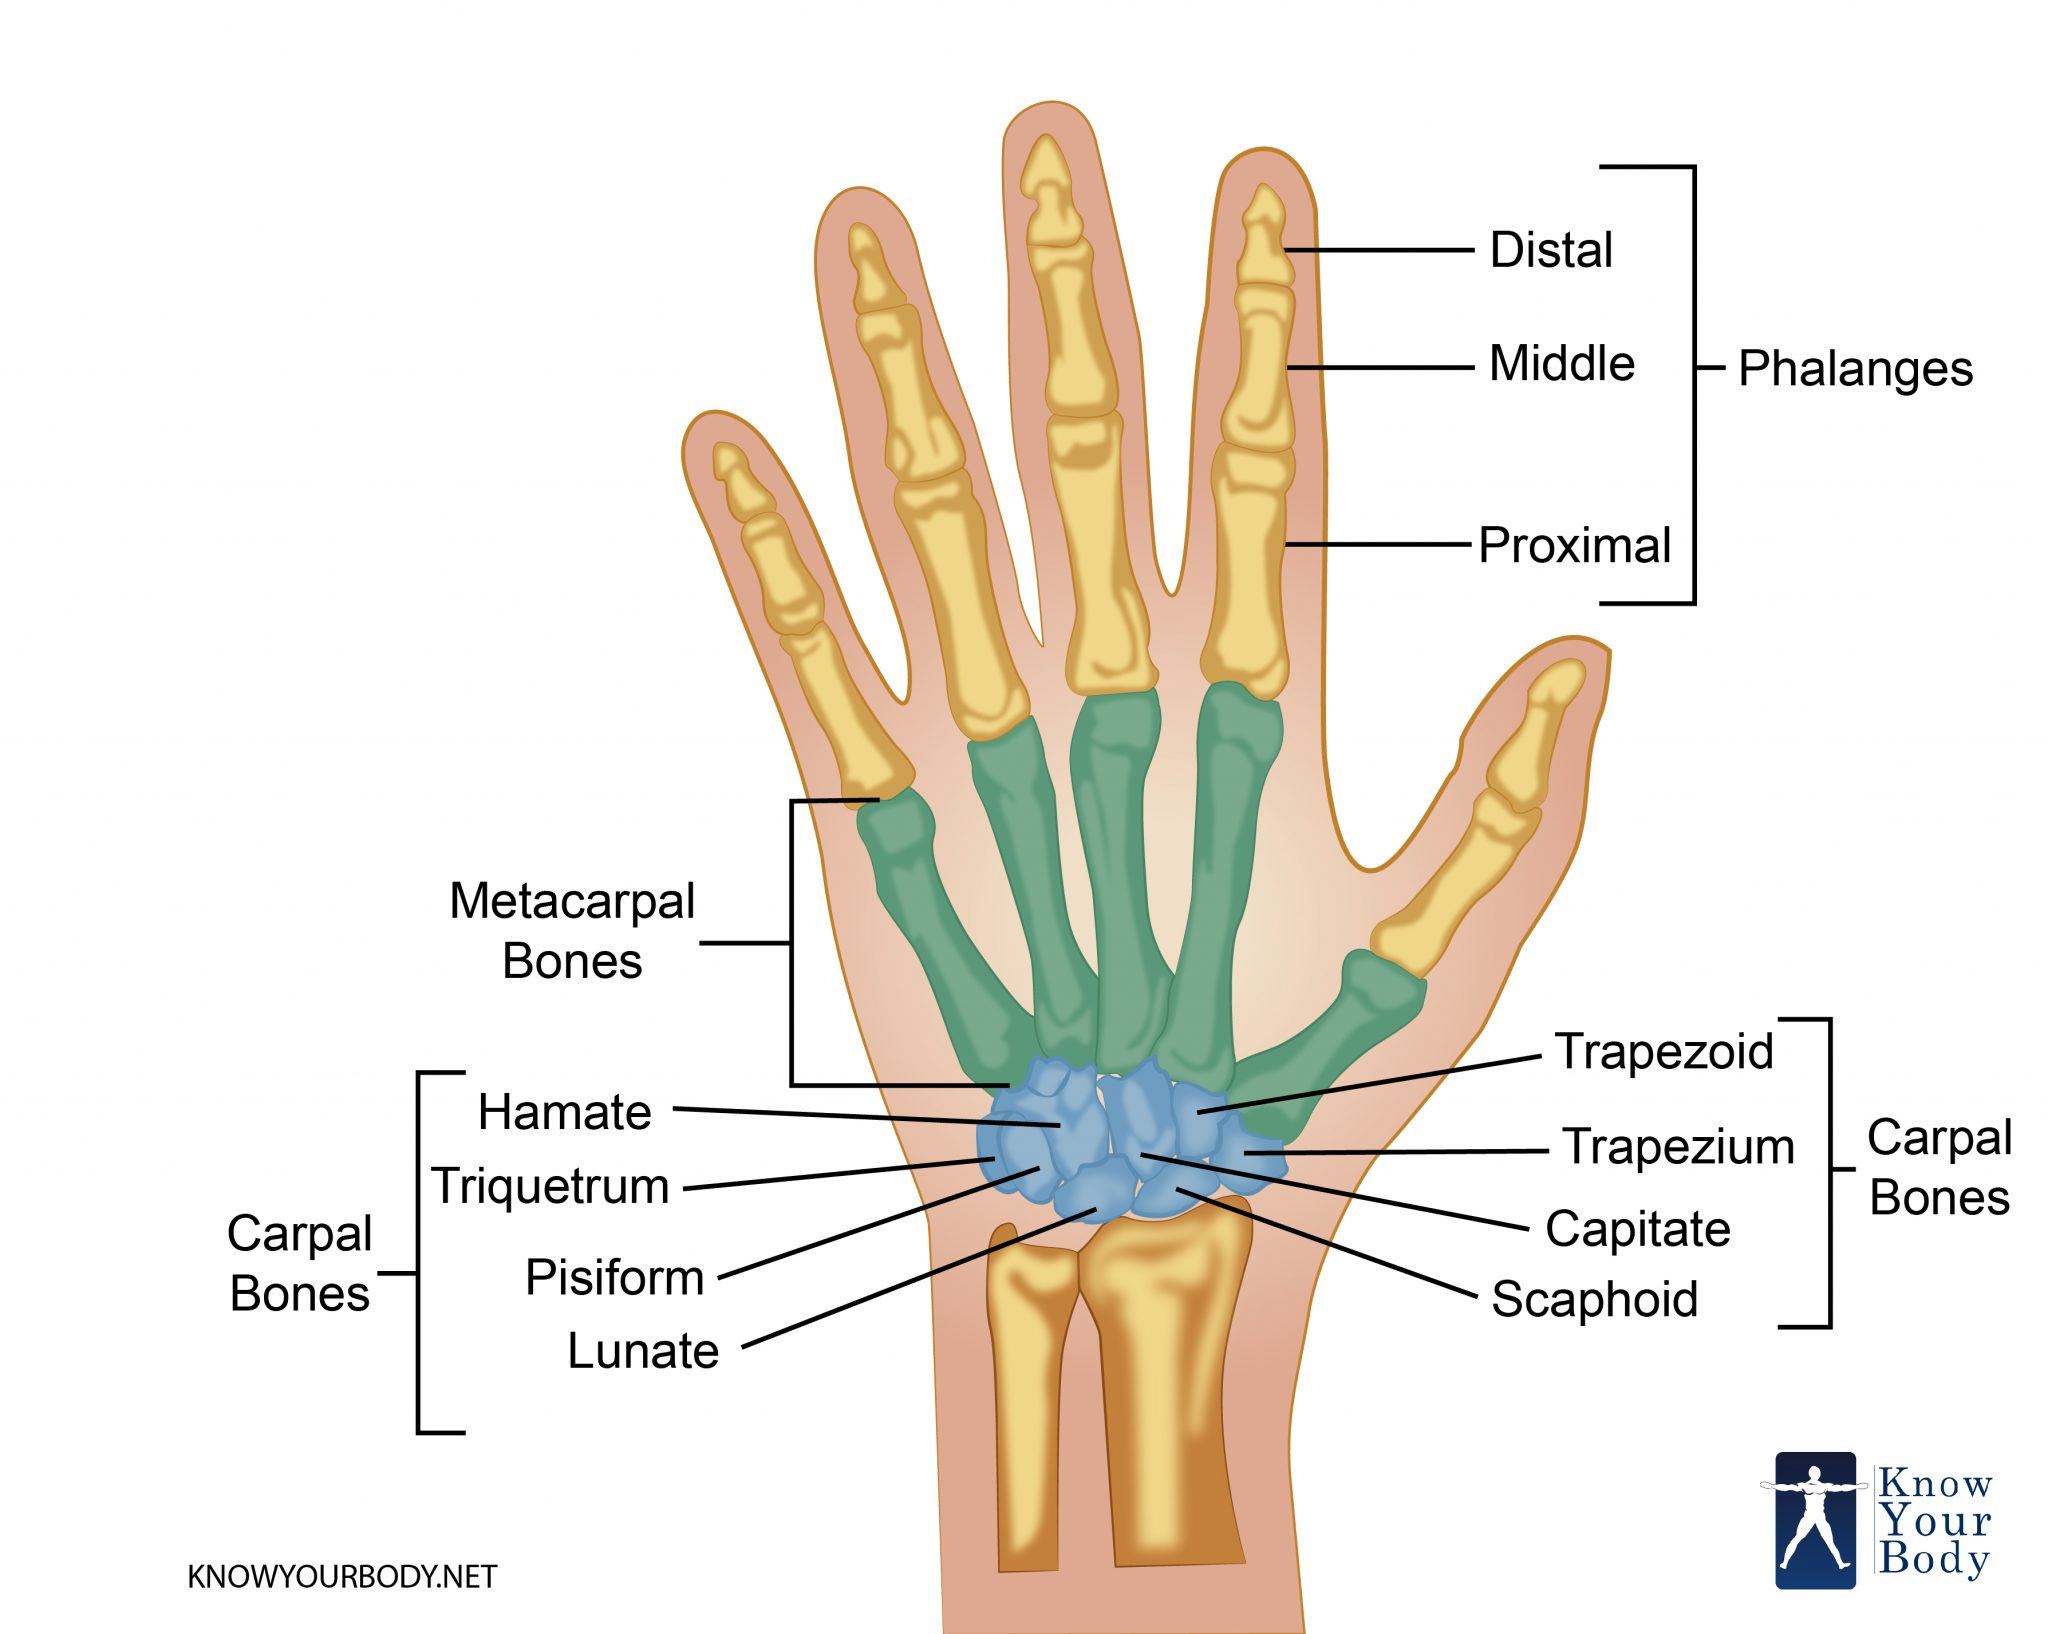 hand bones anatomy structure and diagram rh knowyourbody net hand bones diagram hand bones diagram blank